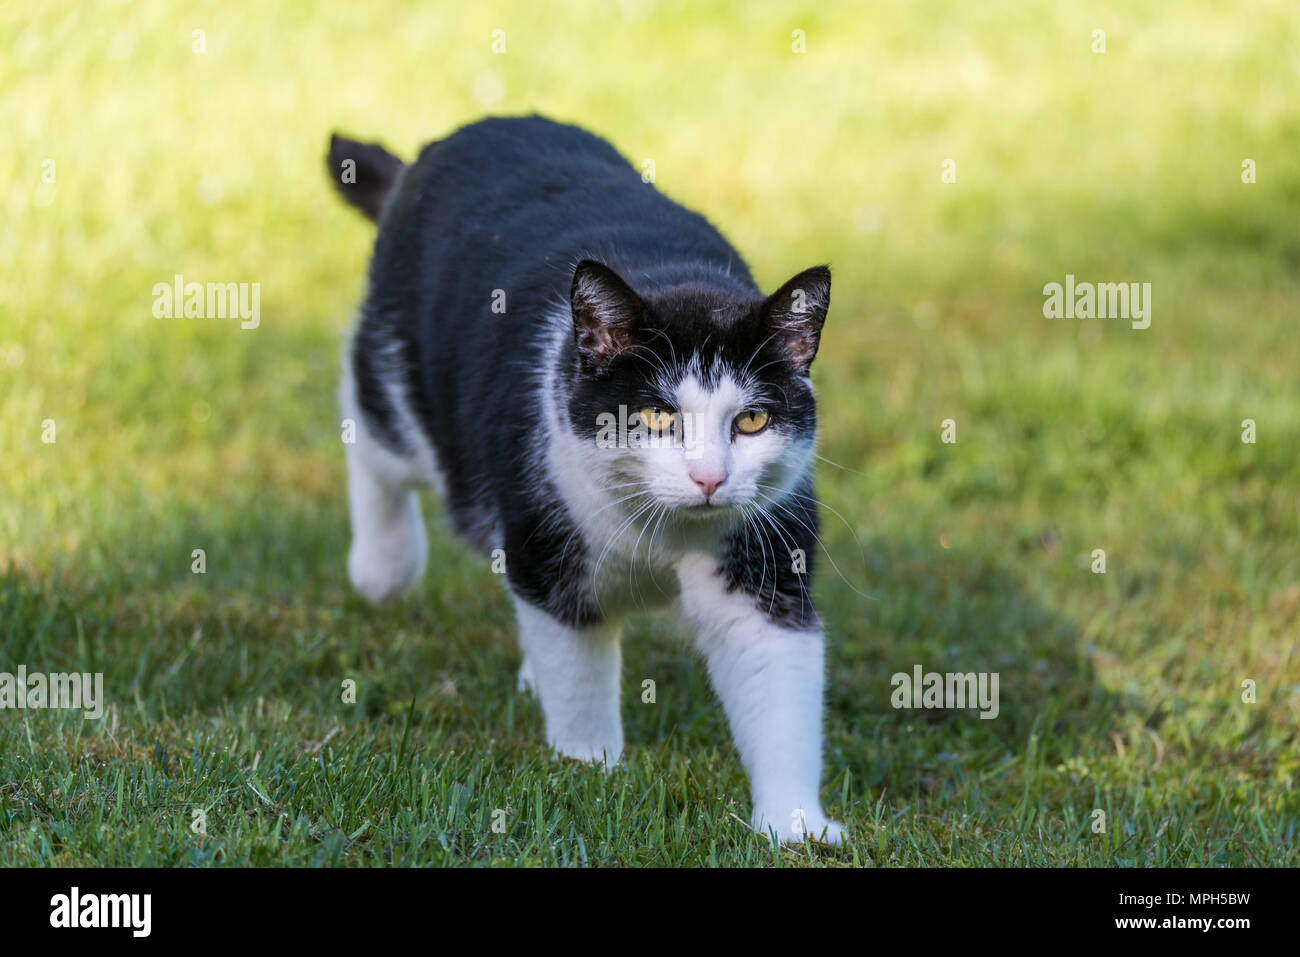 black and white cat walking in gras in a swedish garden stock photo